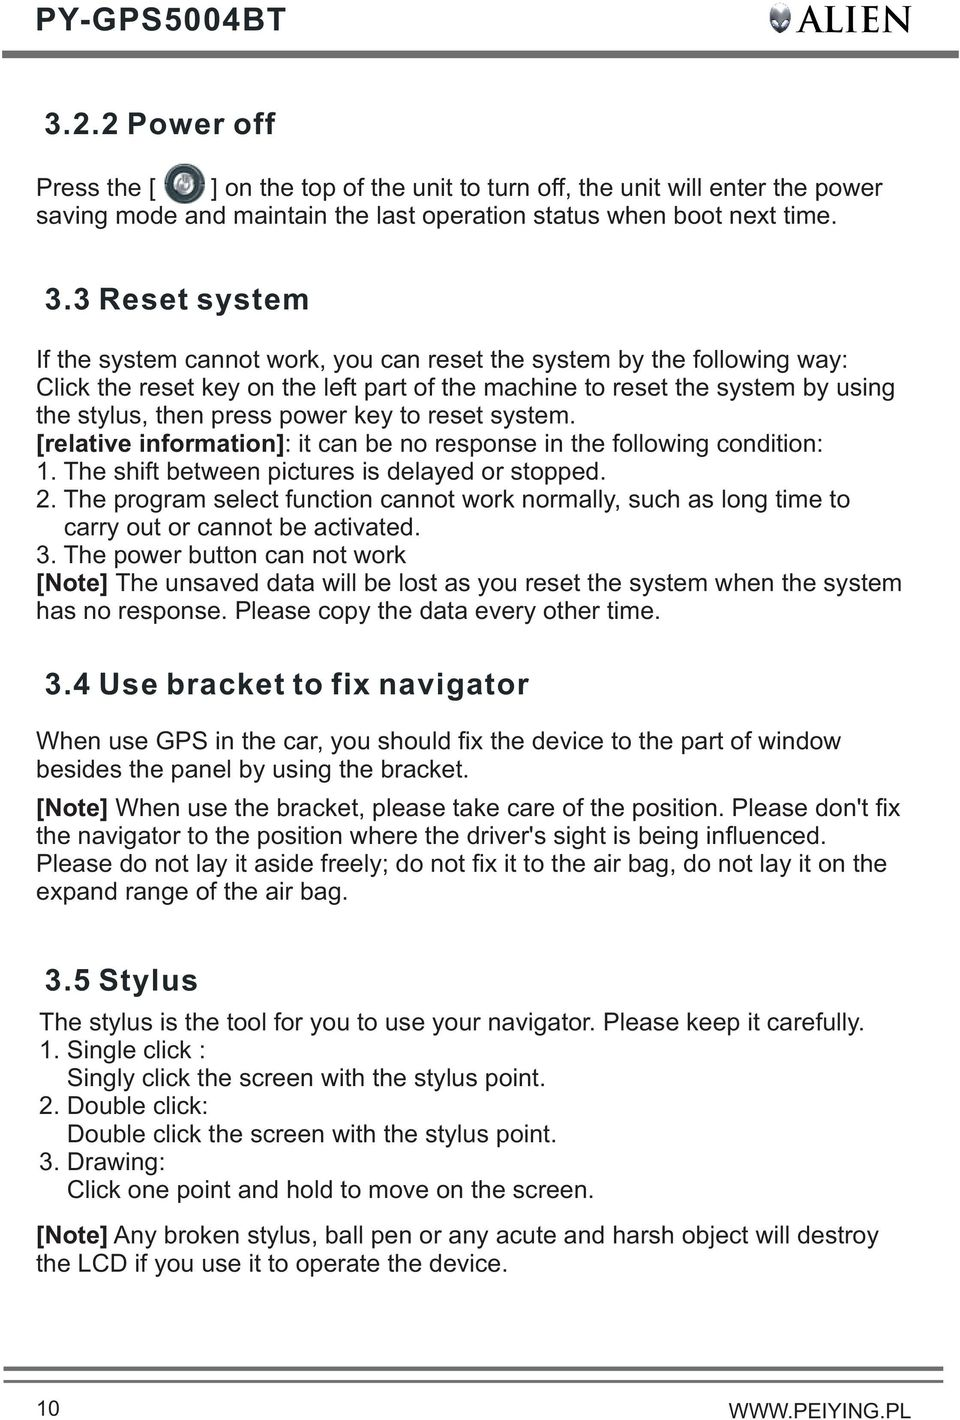 3 Reset system If the system cannot work, you can reset the system by the following way: Click the reset key on the left part of the machine to reset the system by using the stylus, then press power